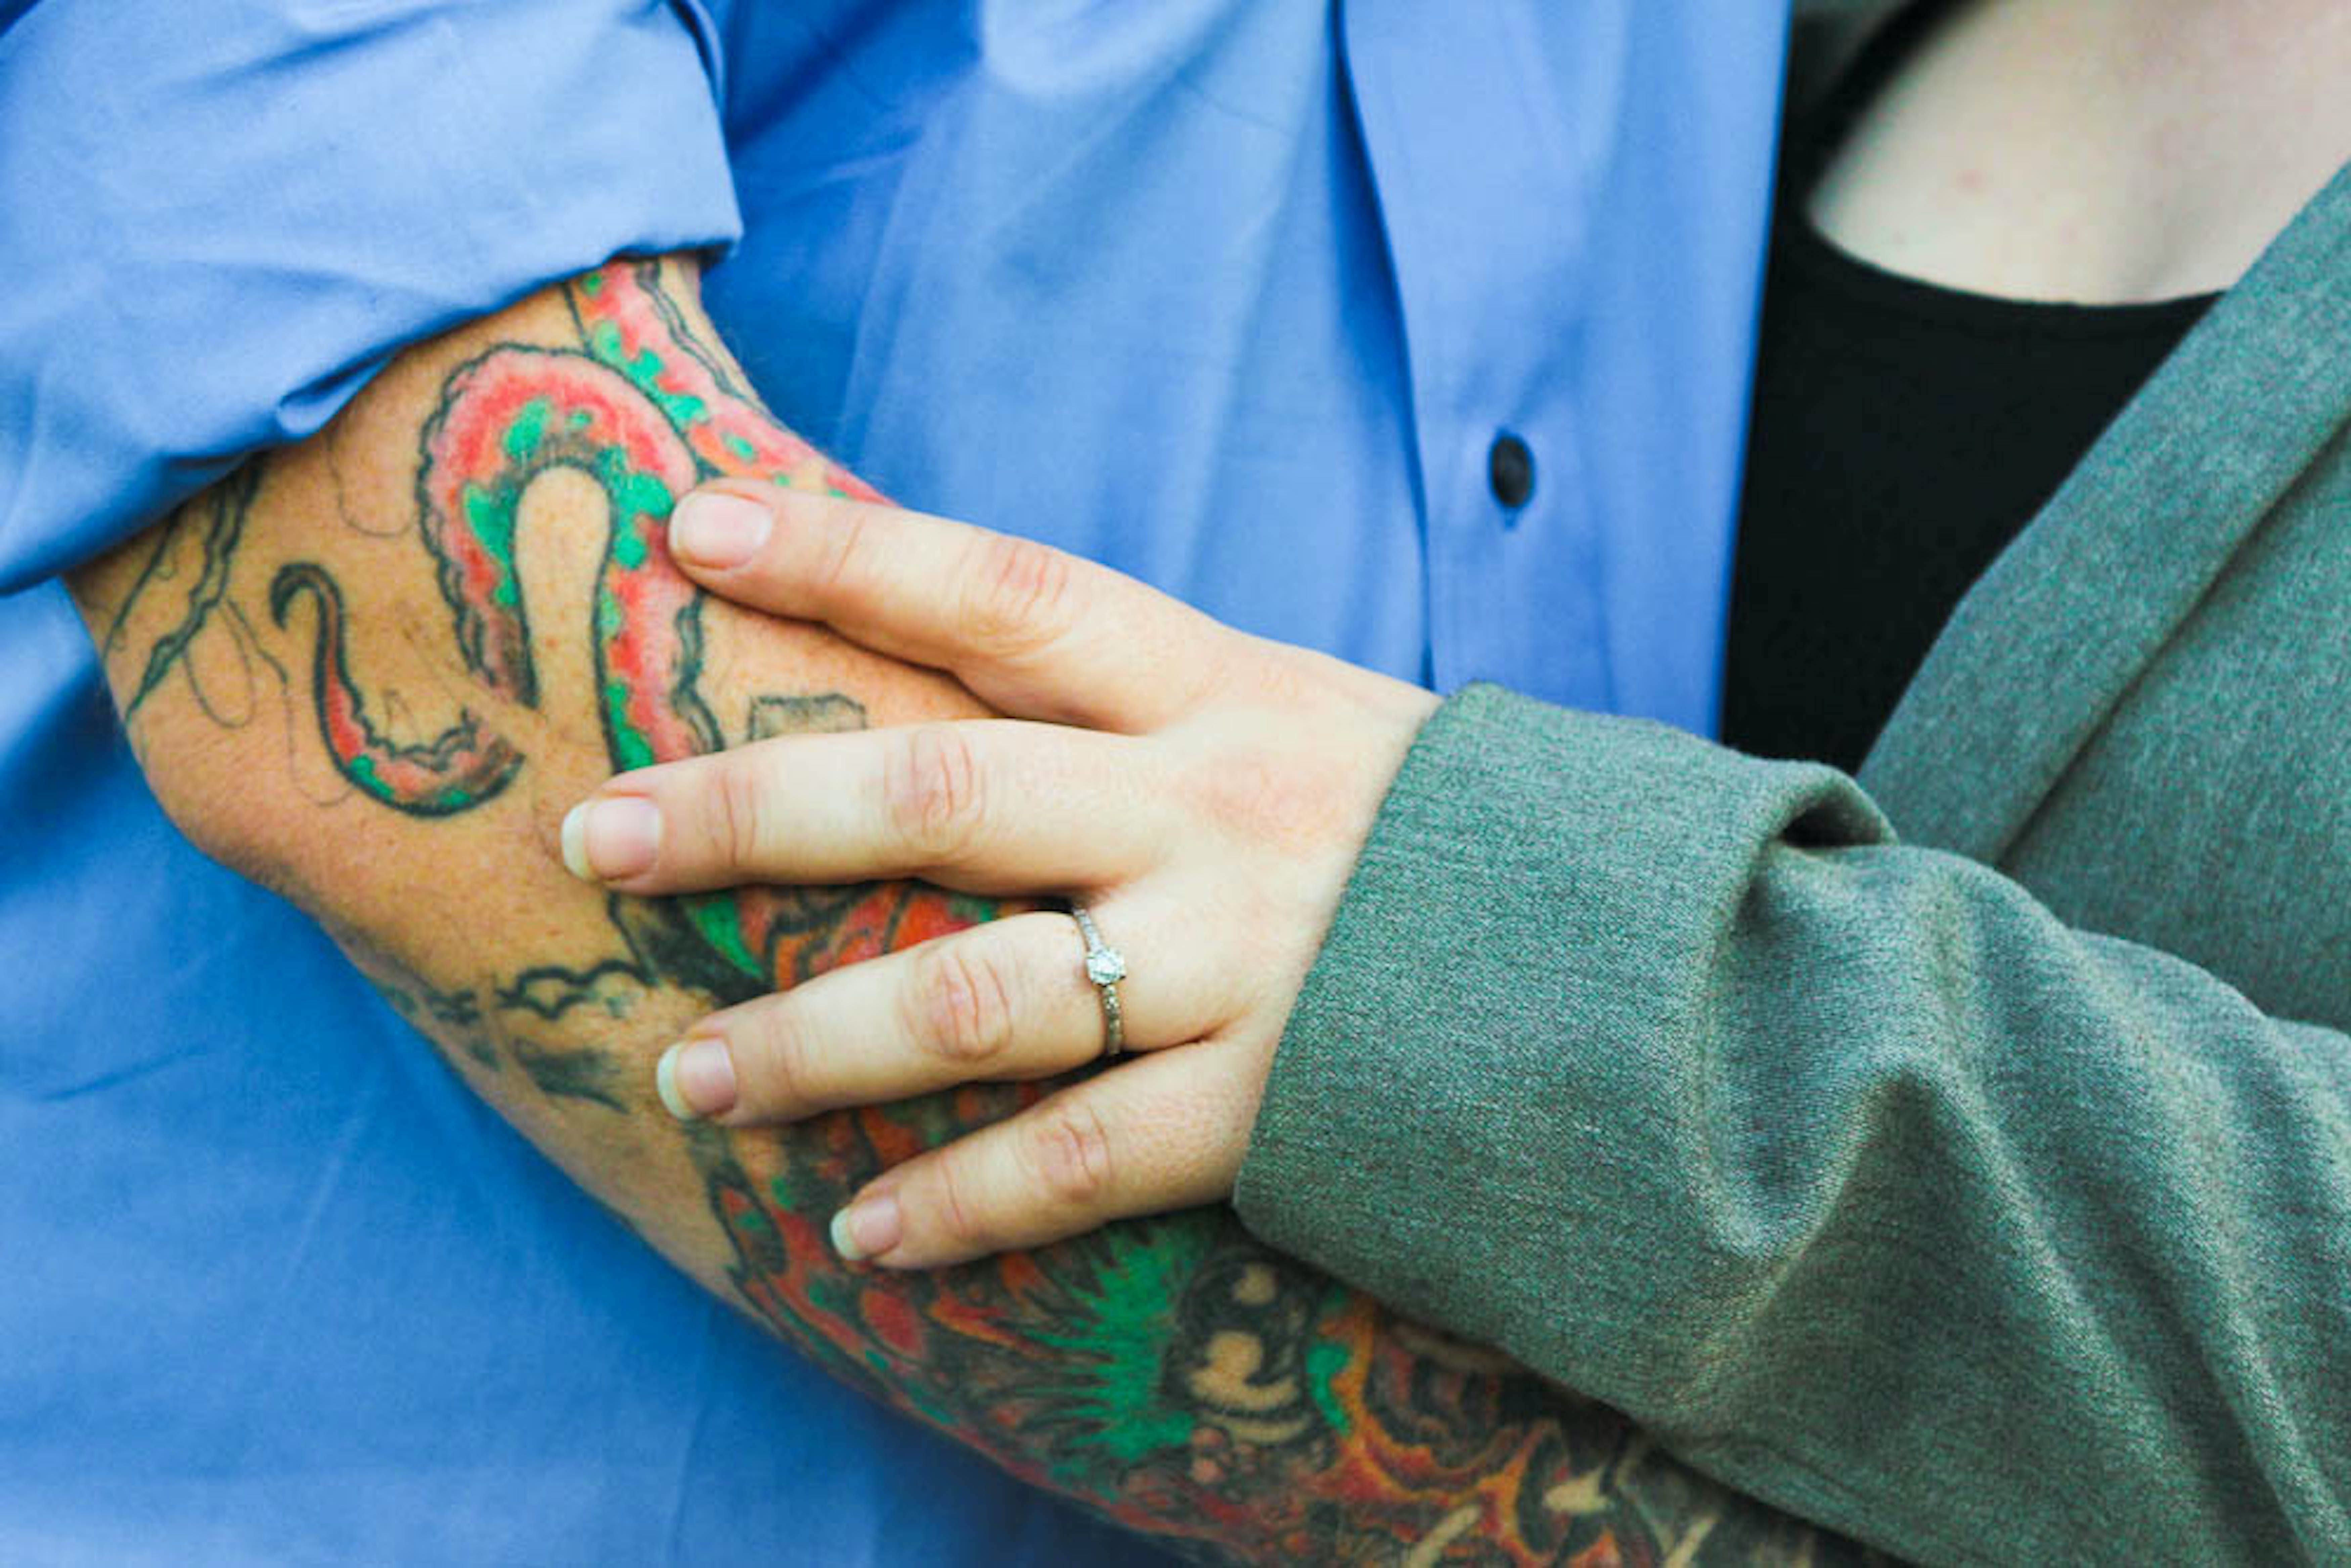 Man With Tattoo With a Woman in Green Top